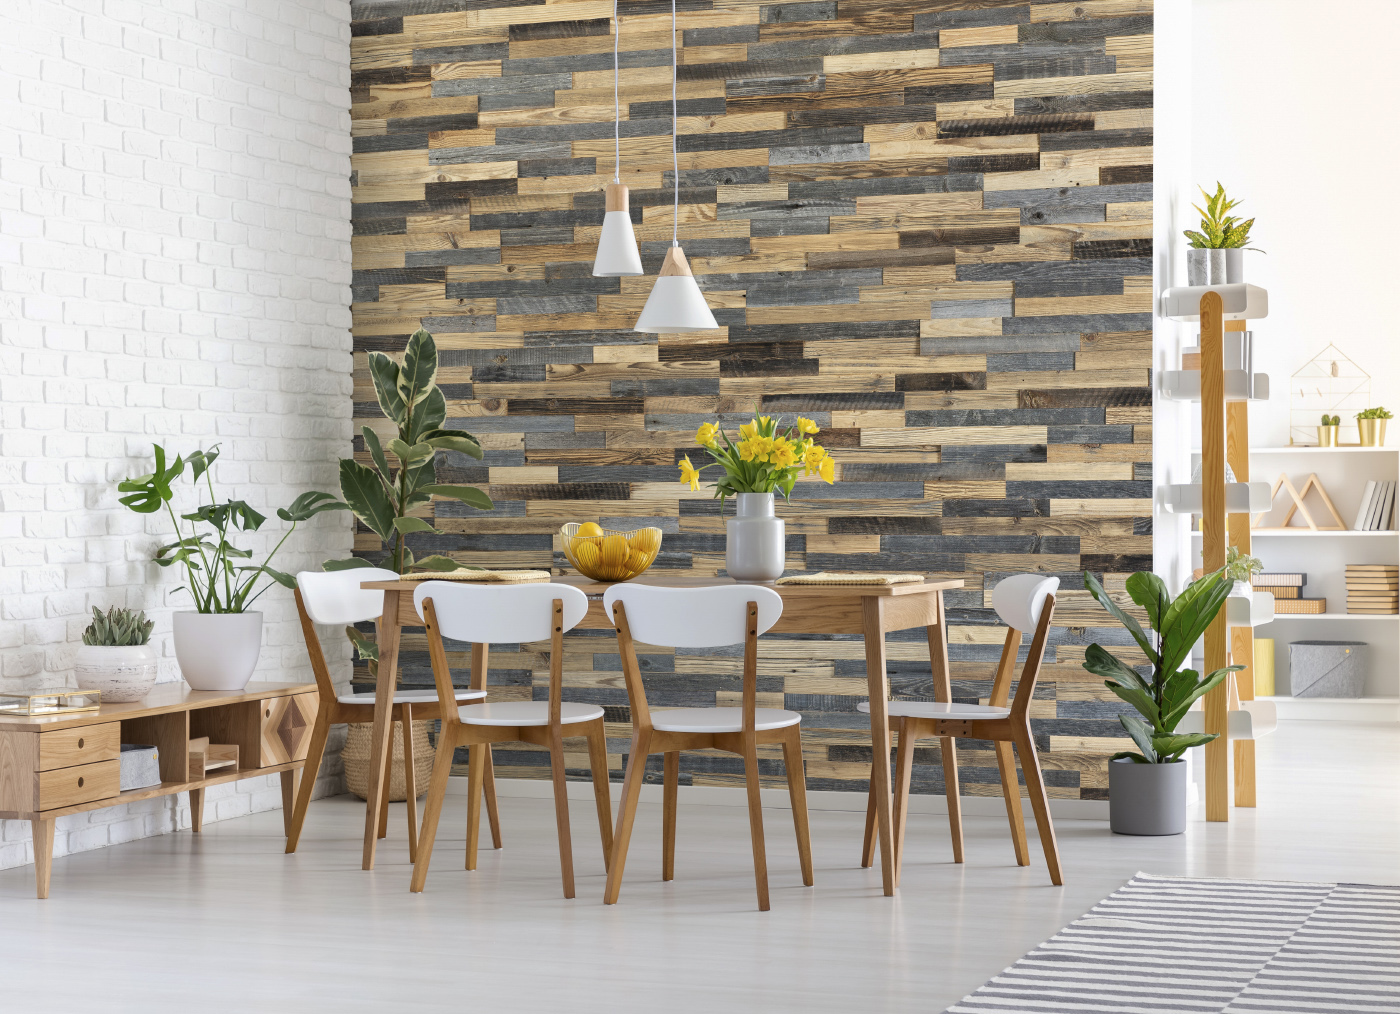 Bright interior with wood panels brick wall